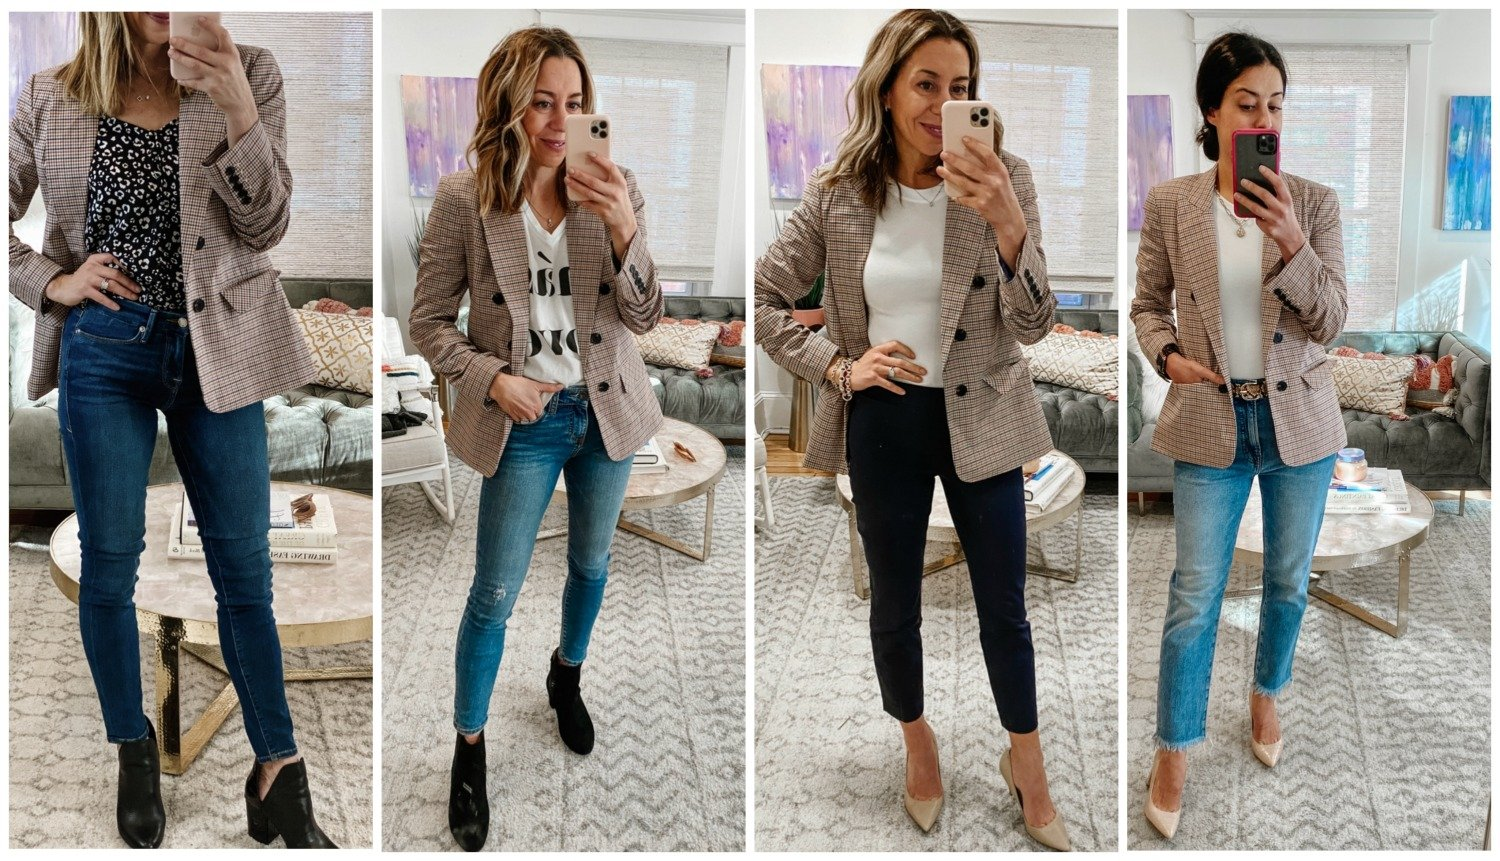 The Motherchic wearing plaid blazer capsule wardrobe